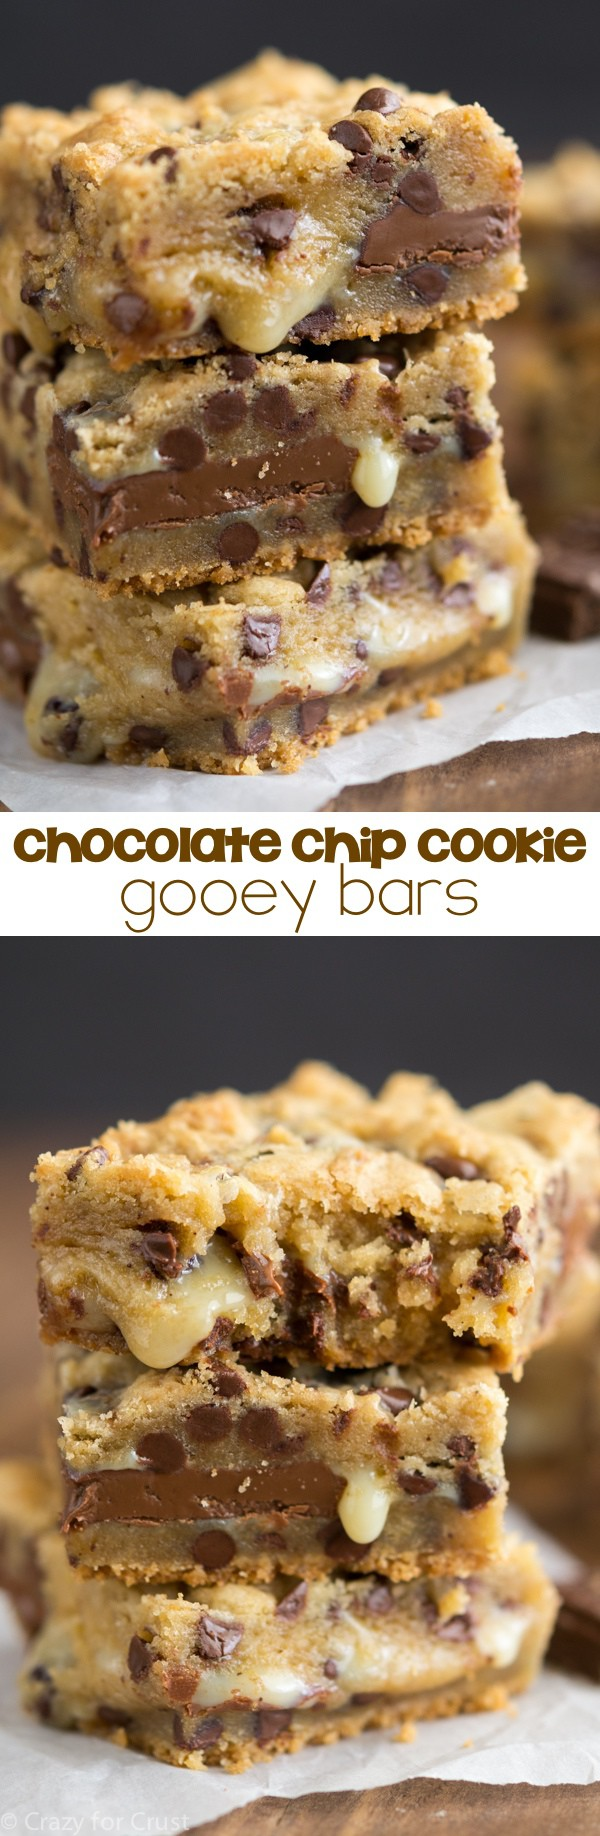 collage of chocolate chip cookie bars